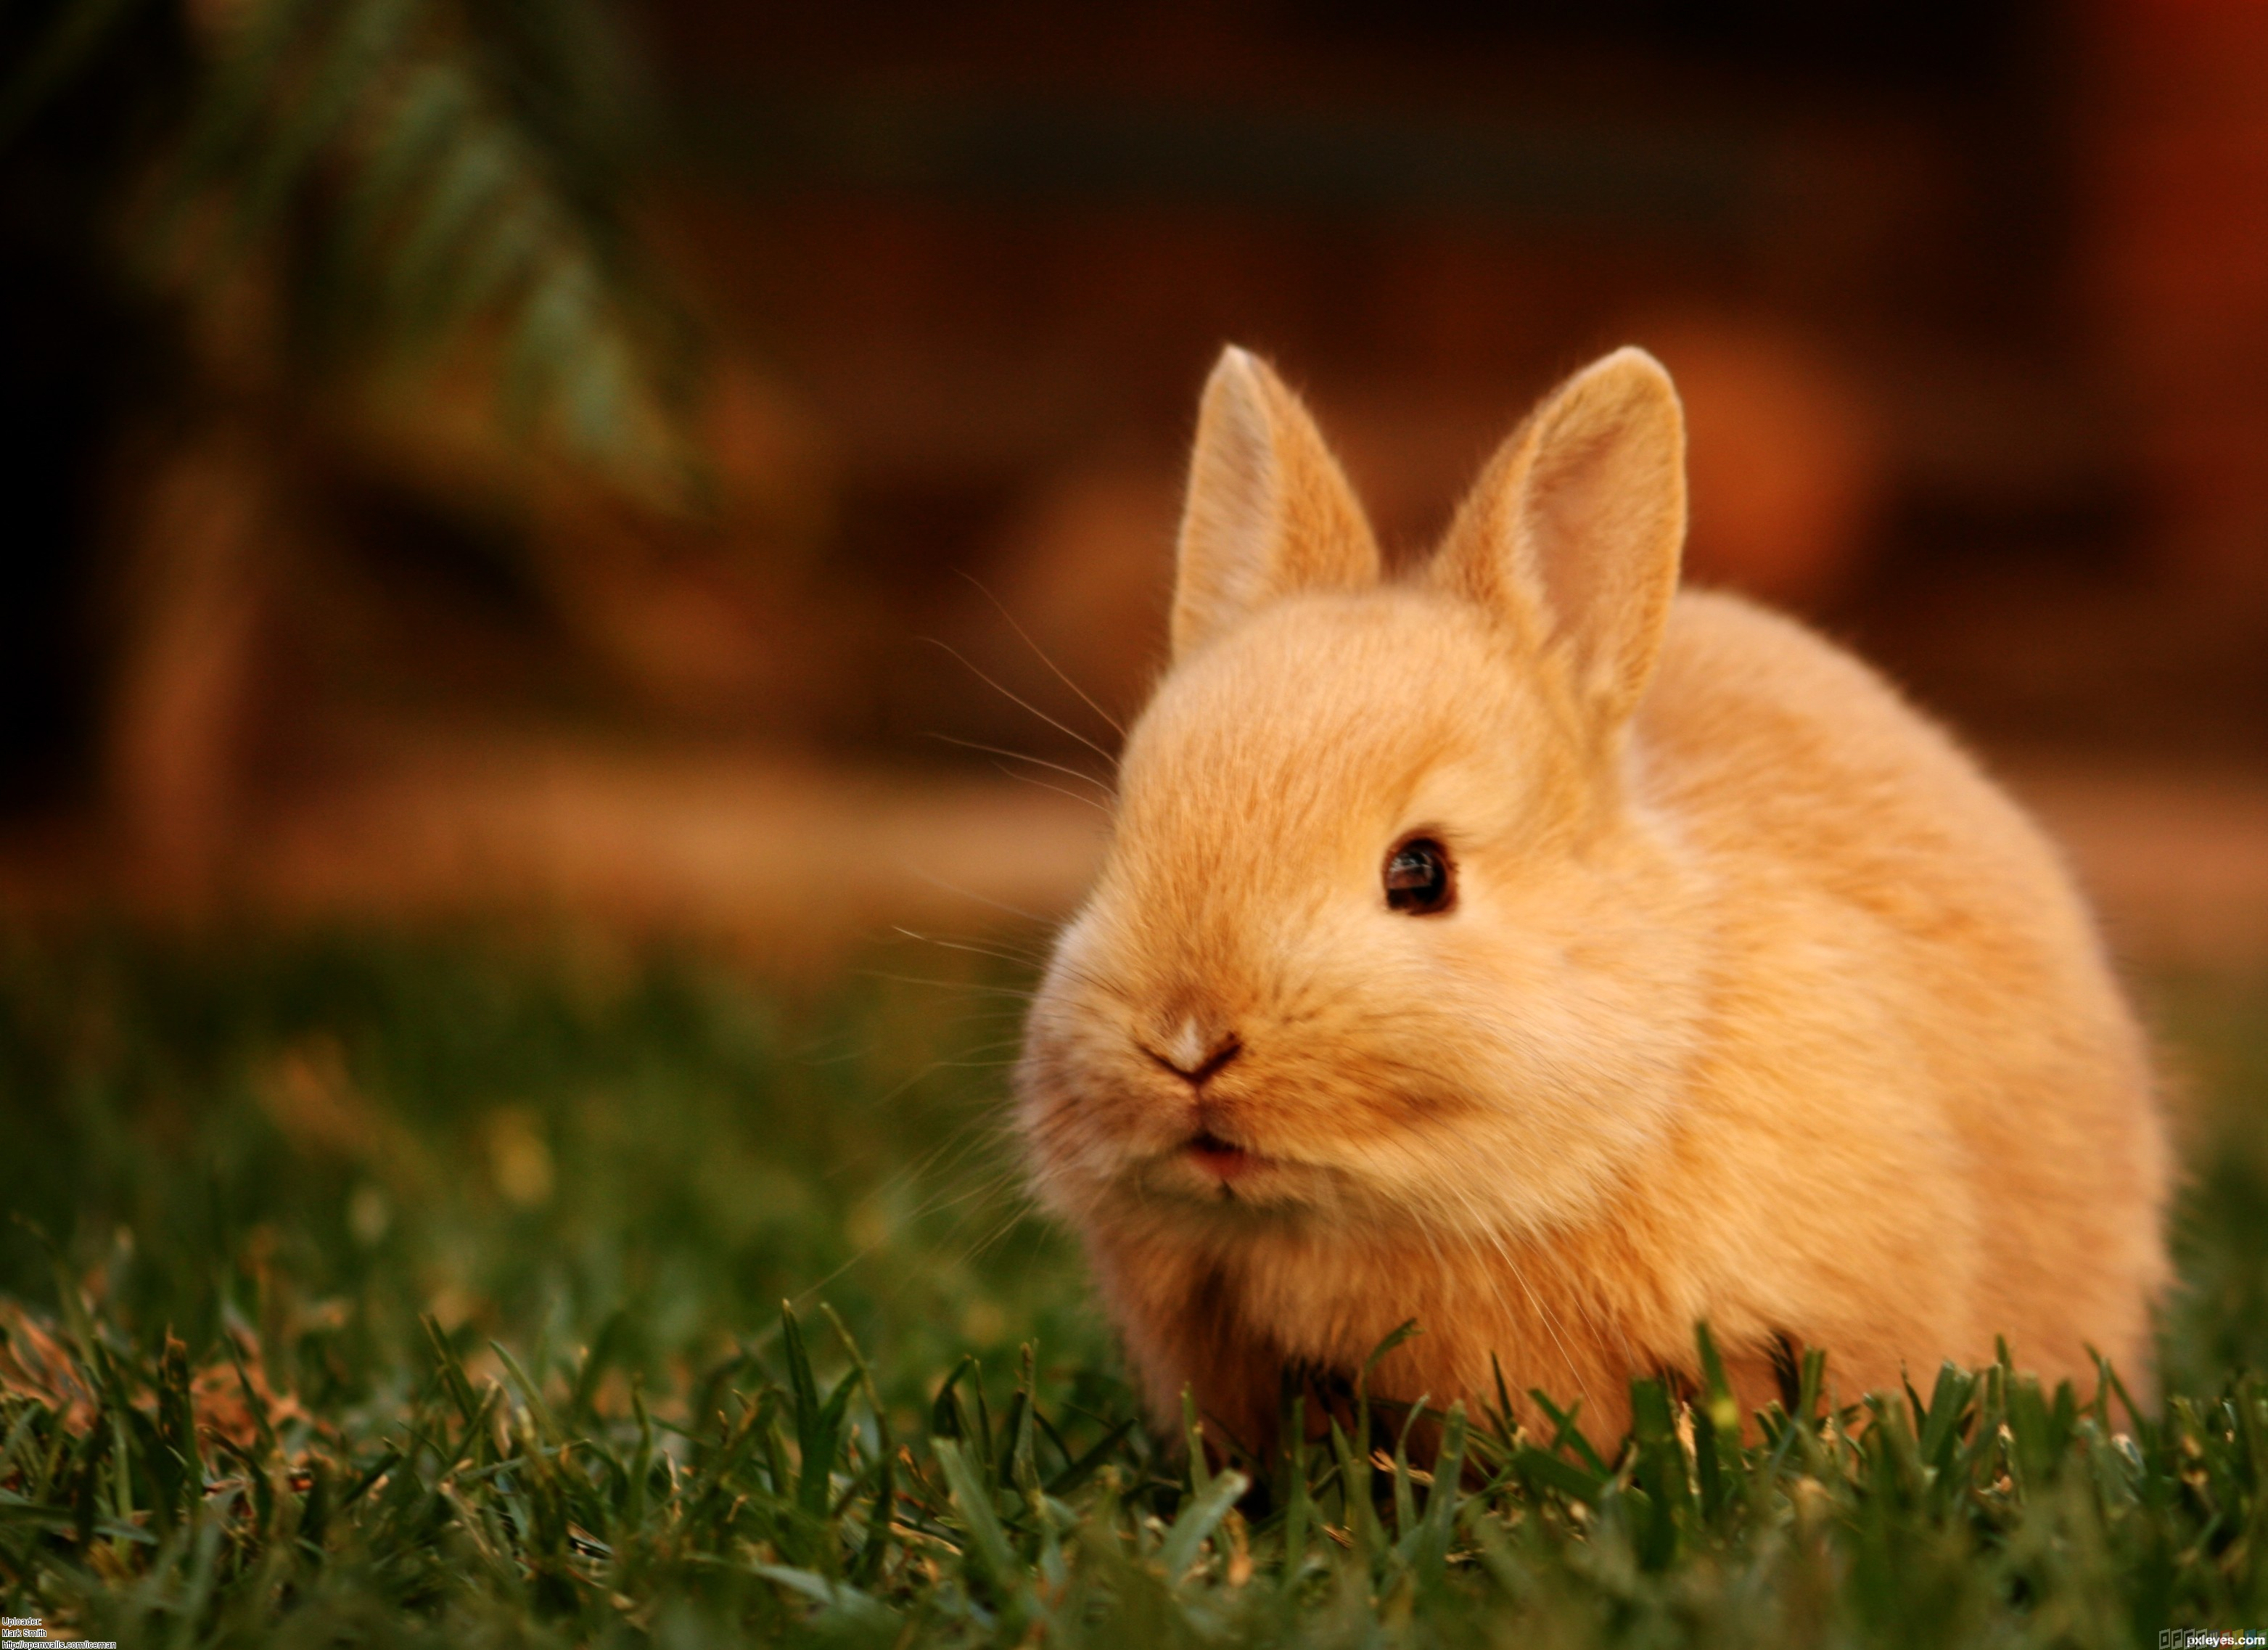 cuteness wallpaper cute little bunny wallpaper hd 3420 wallpaper 3126x2274